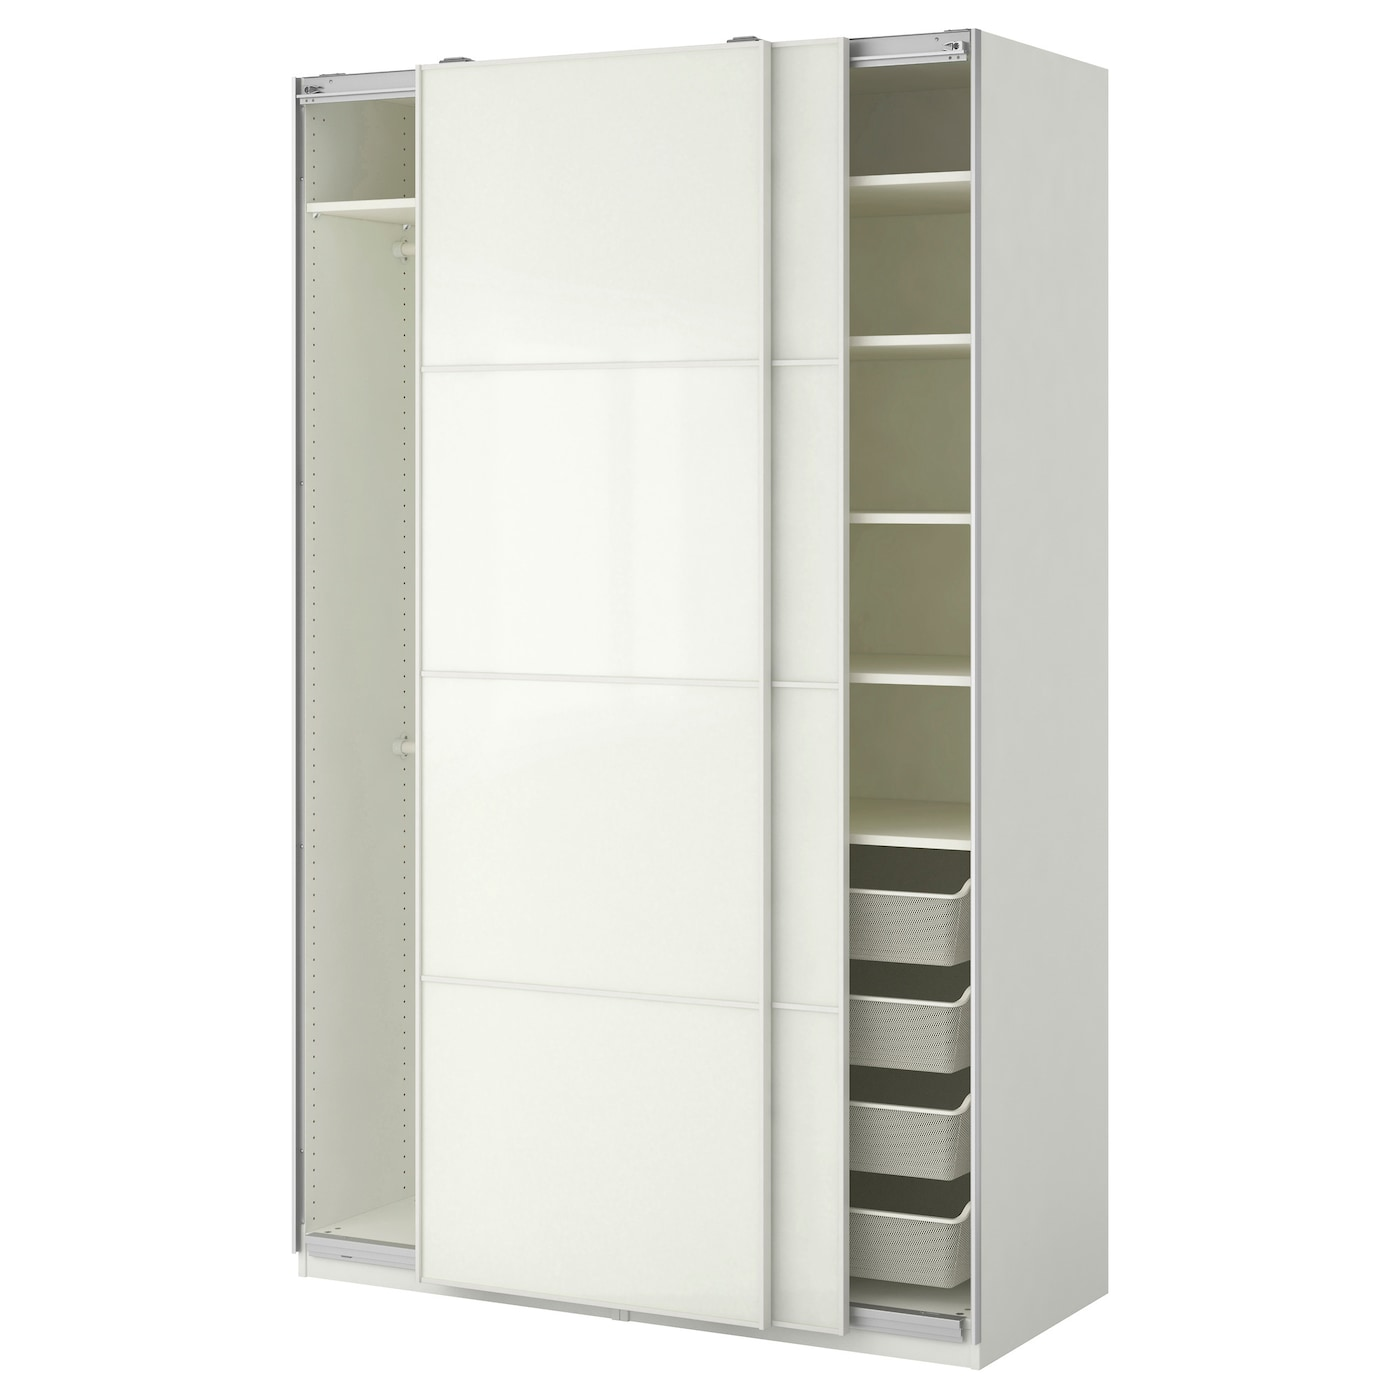 Pax wardrobe white f rvik white glass 150x66x236 cm ikea for Schrank 90 breit